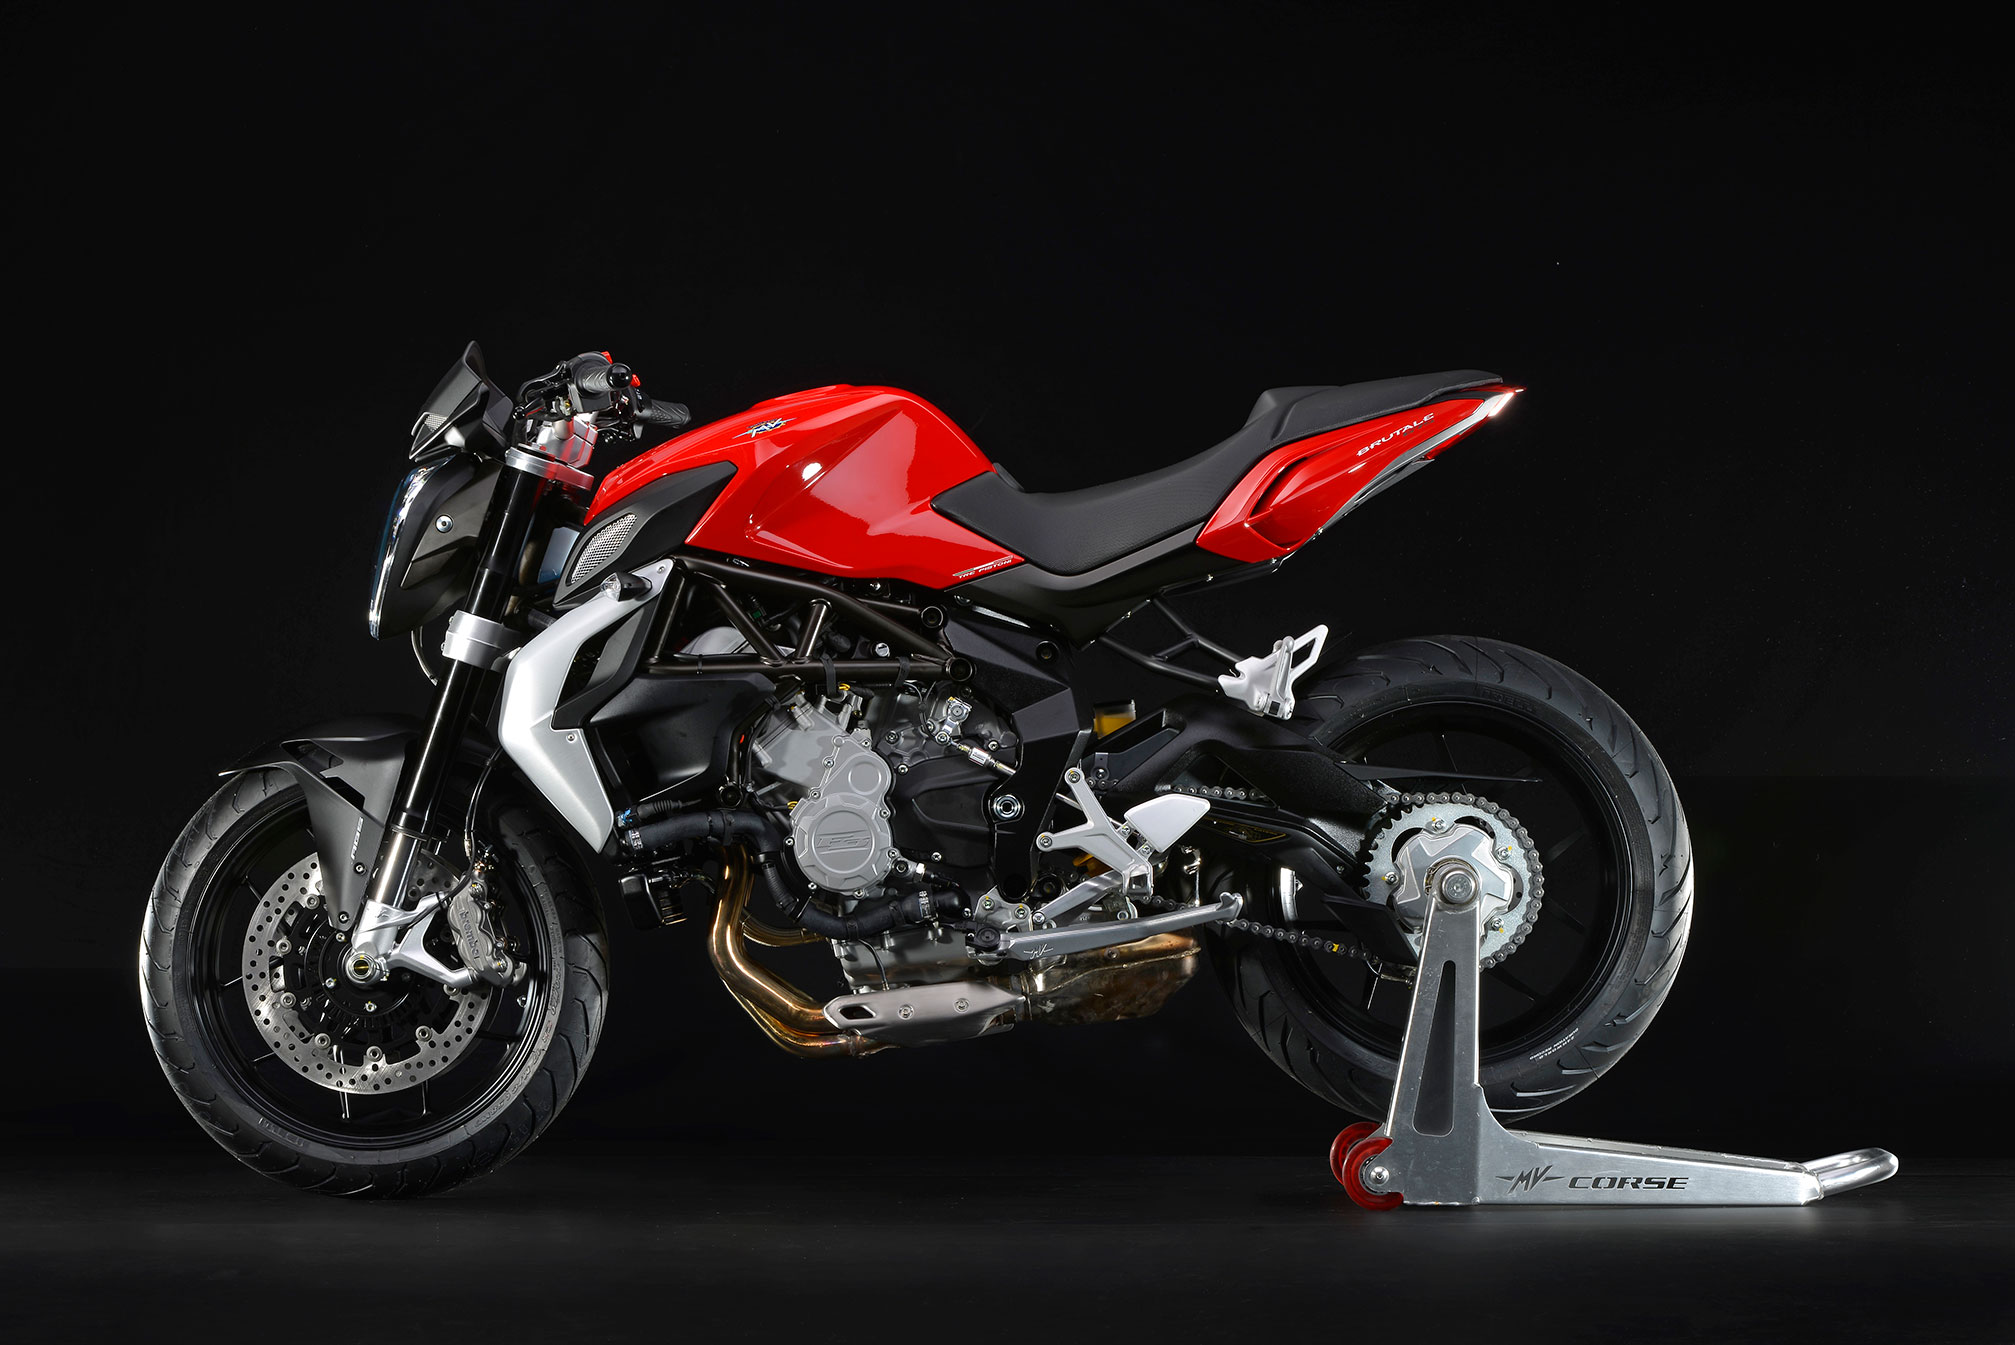 2016 MV Agusta Brutale 675 Review